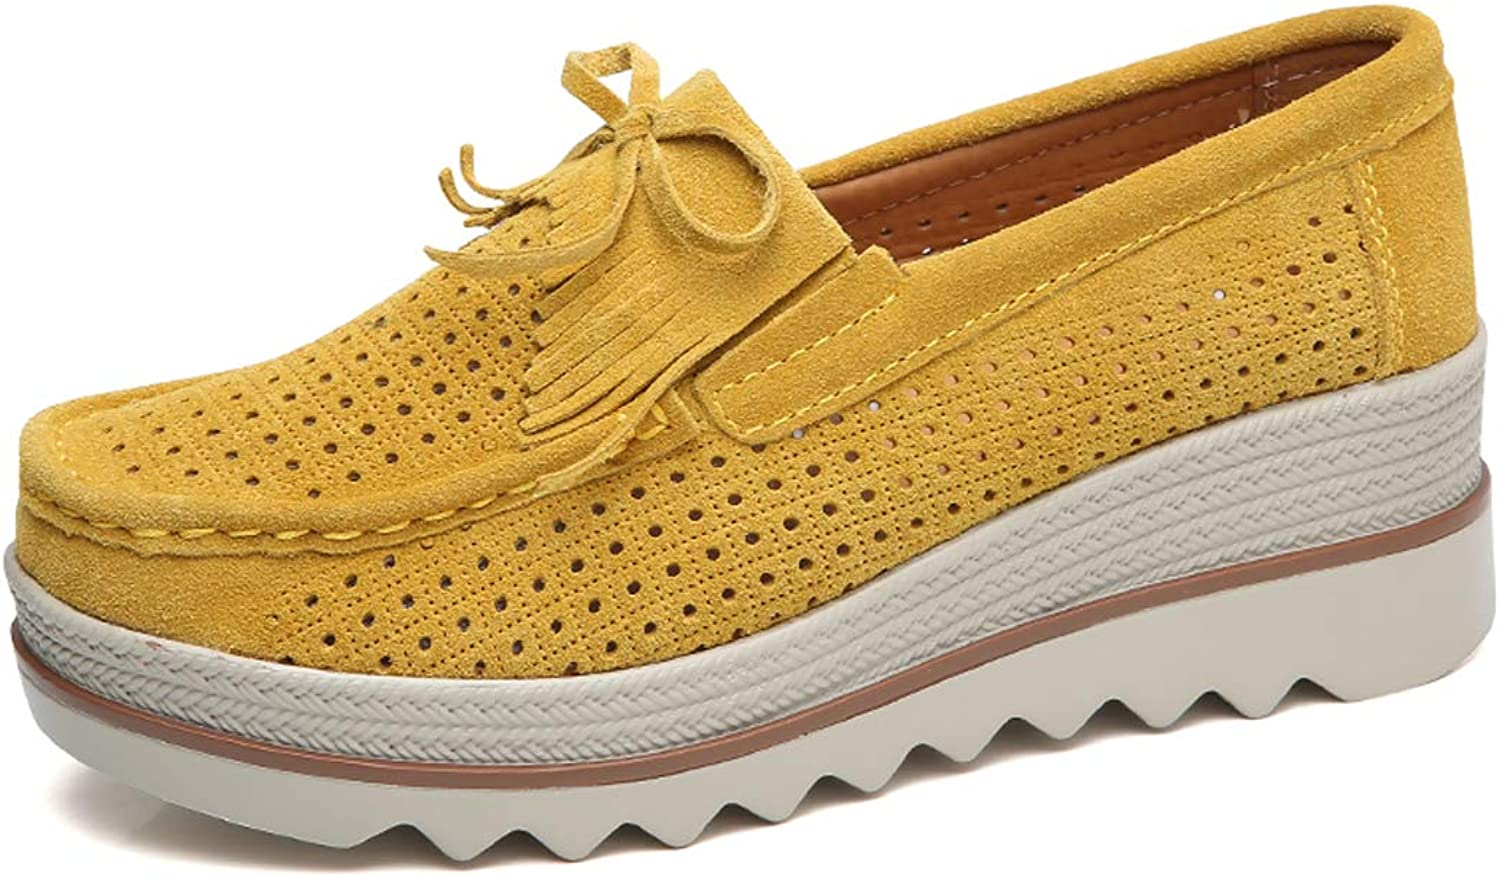 Ruiatoo Women Platform Slip On Loafers Comfort Genuine Suede with Tassel Hollow Out Low Top Moccasins Yellow 40